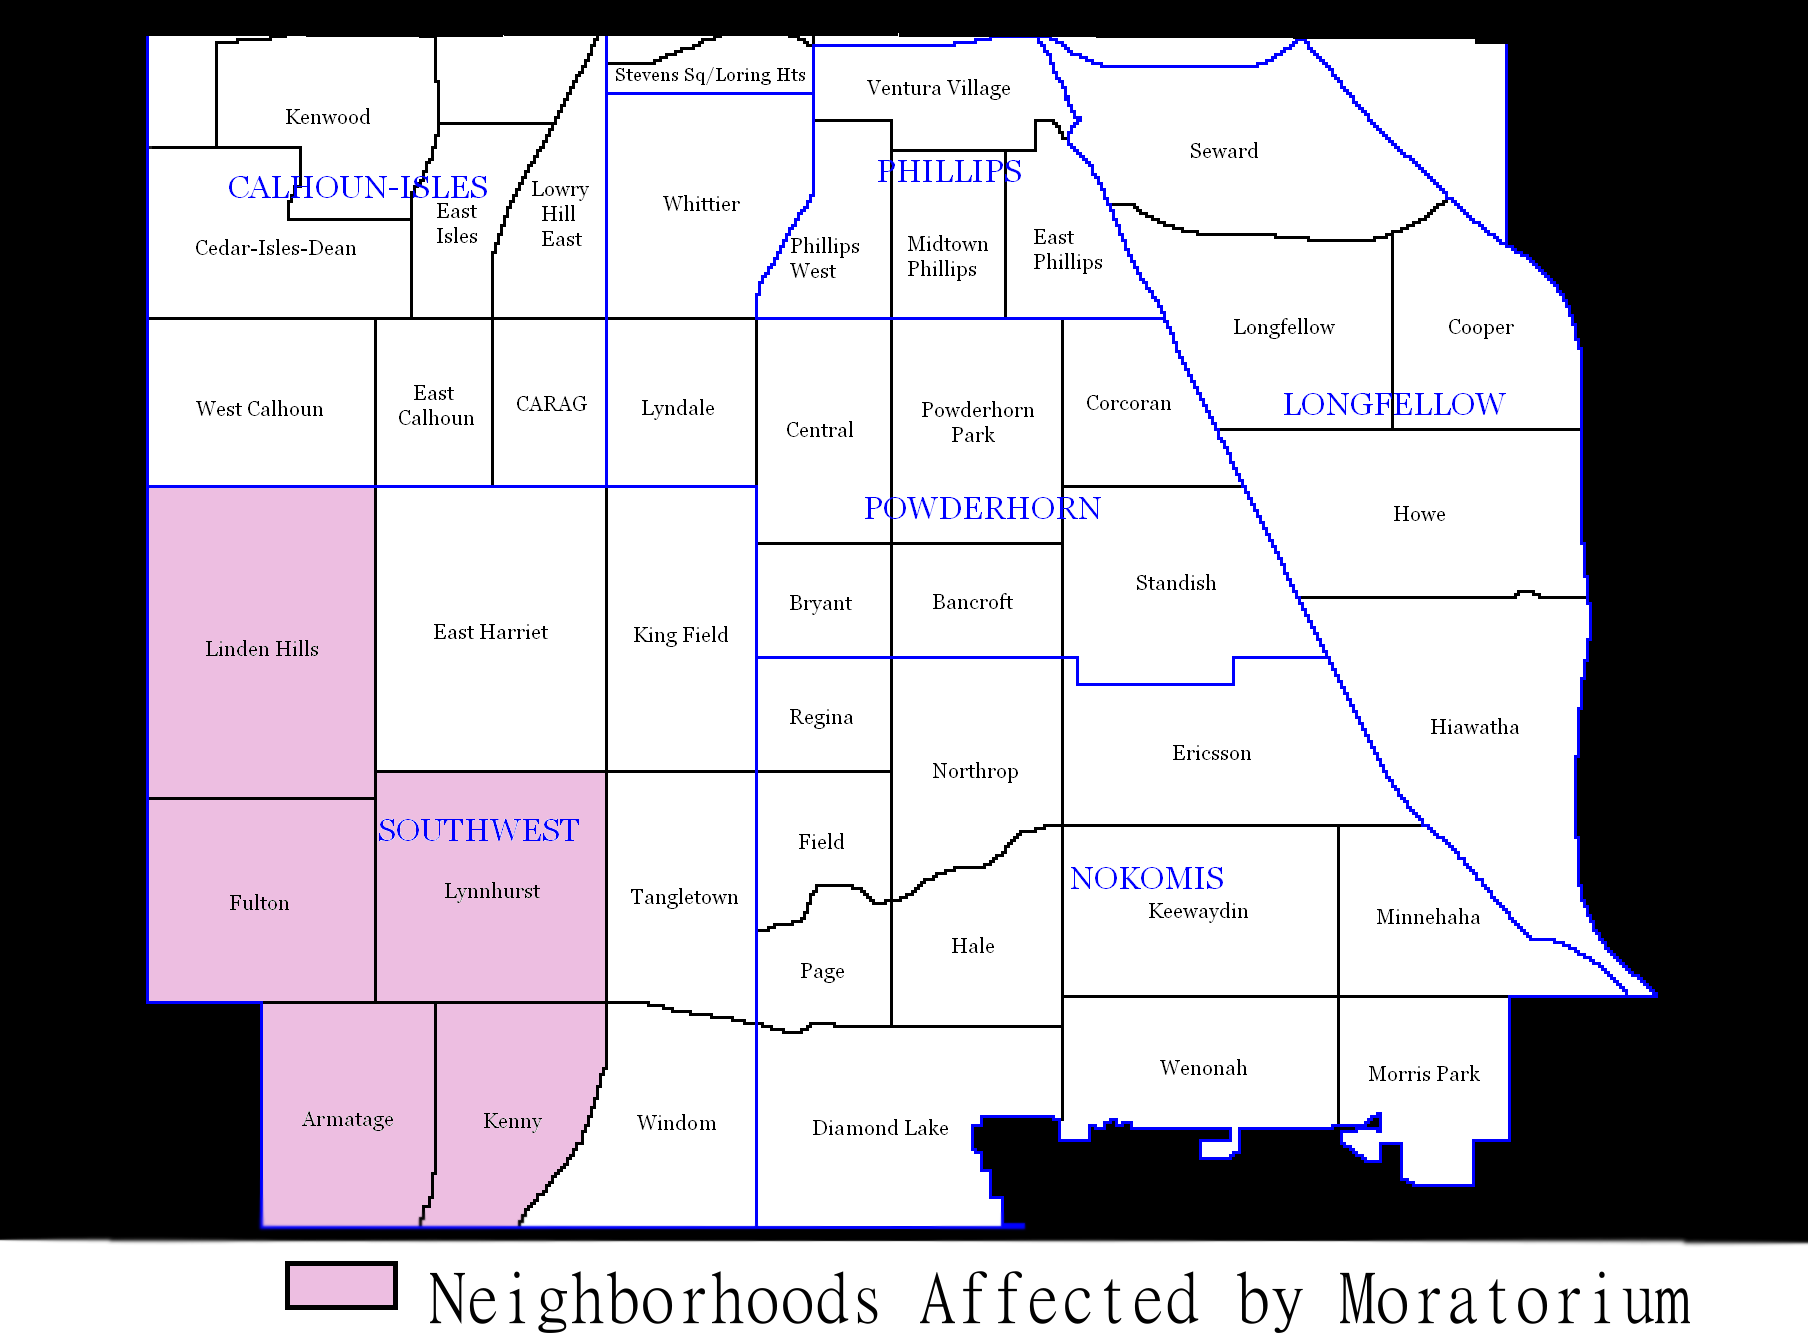 Southwest Minneapolis Moratorium